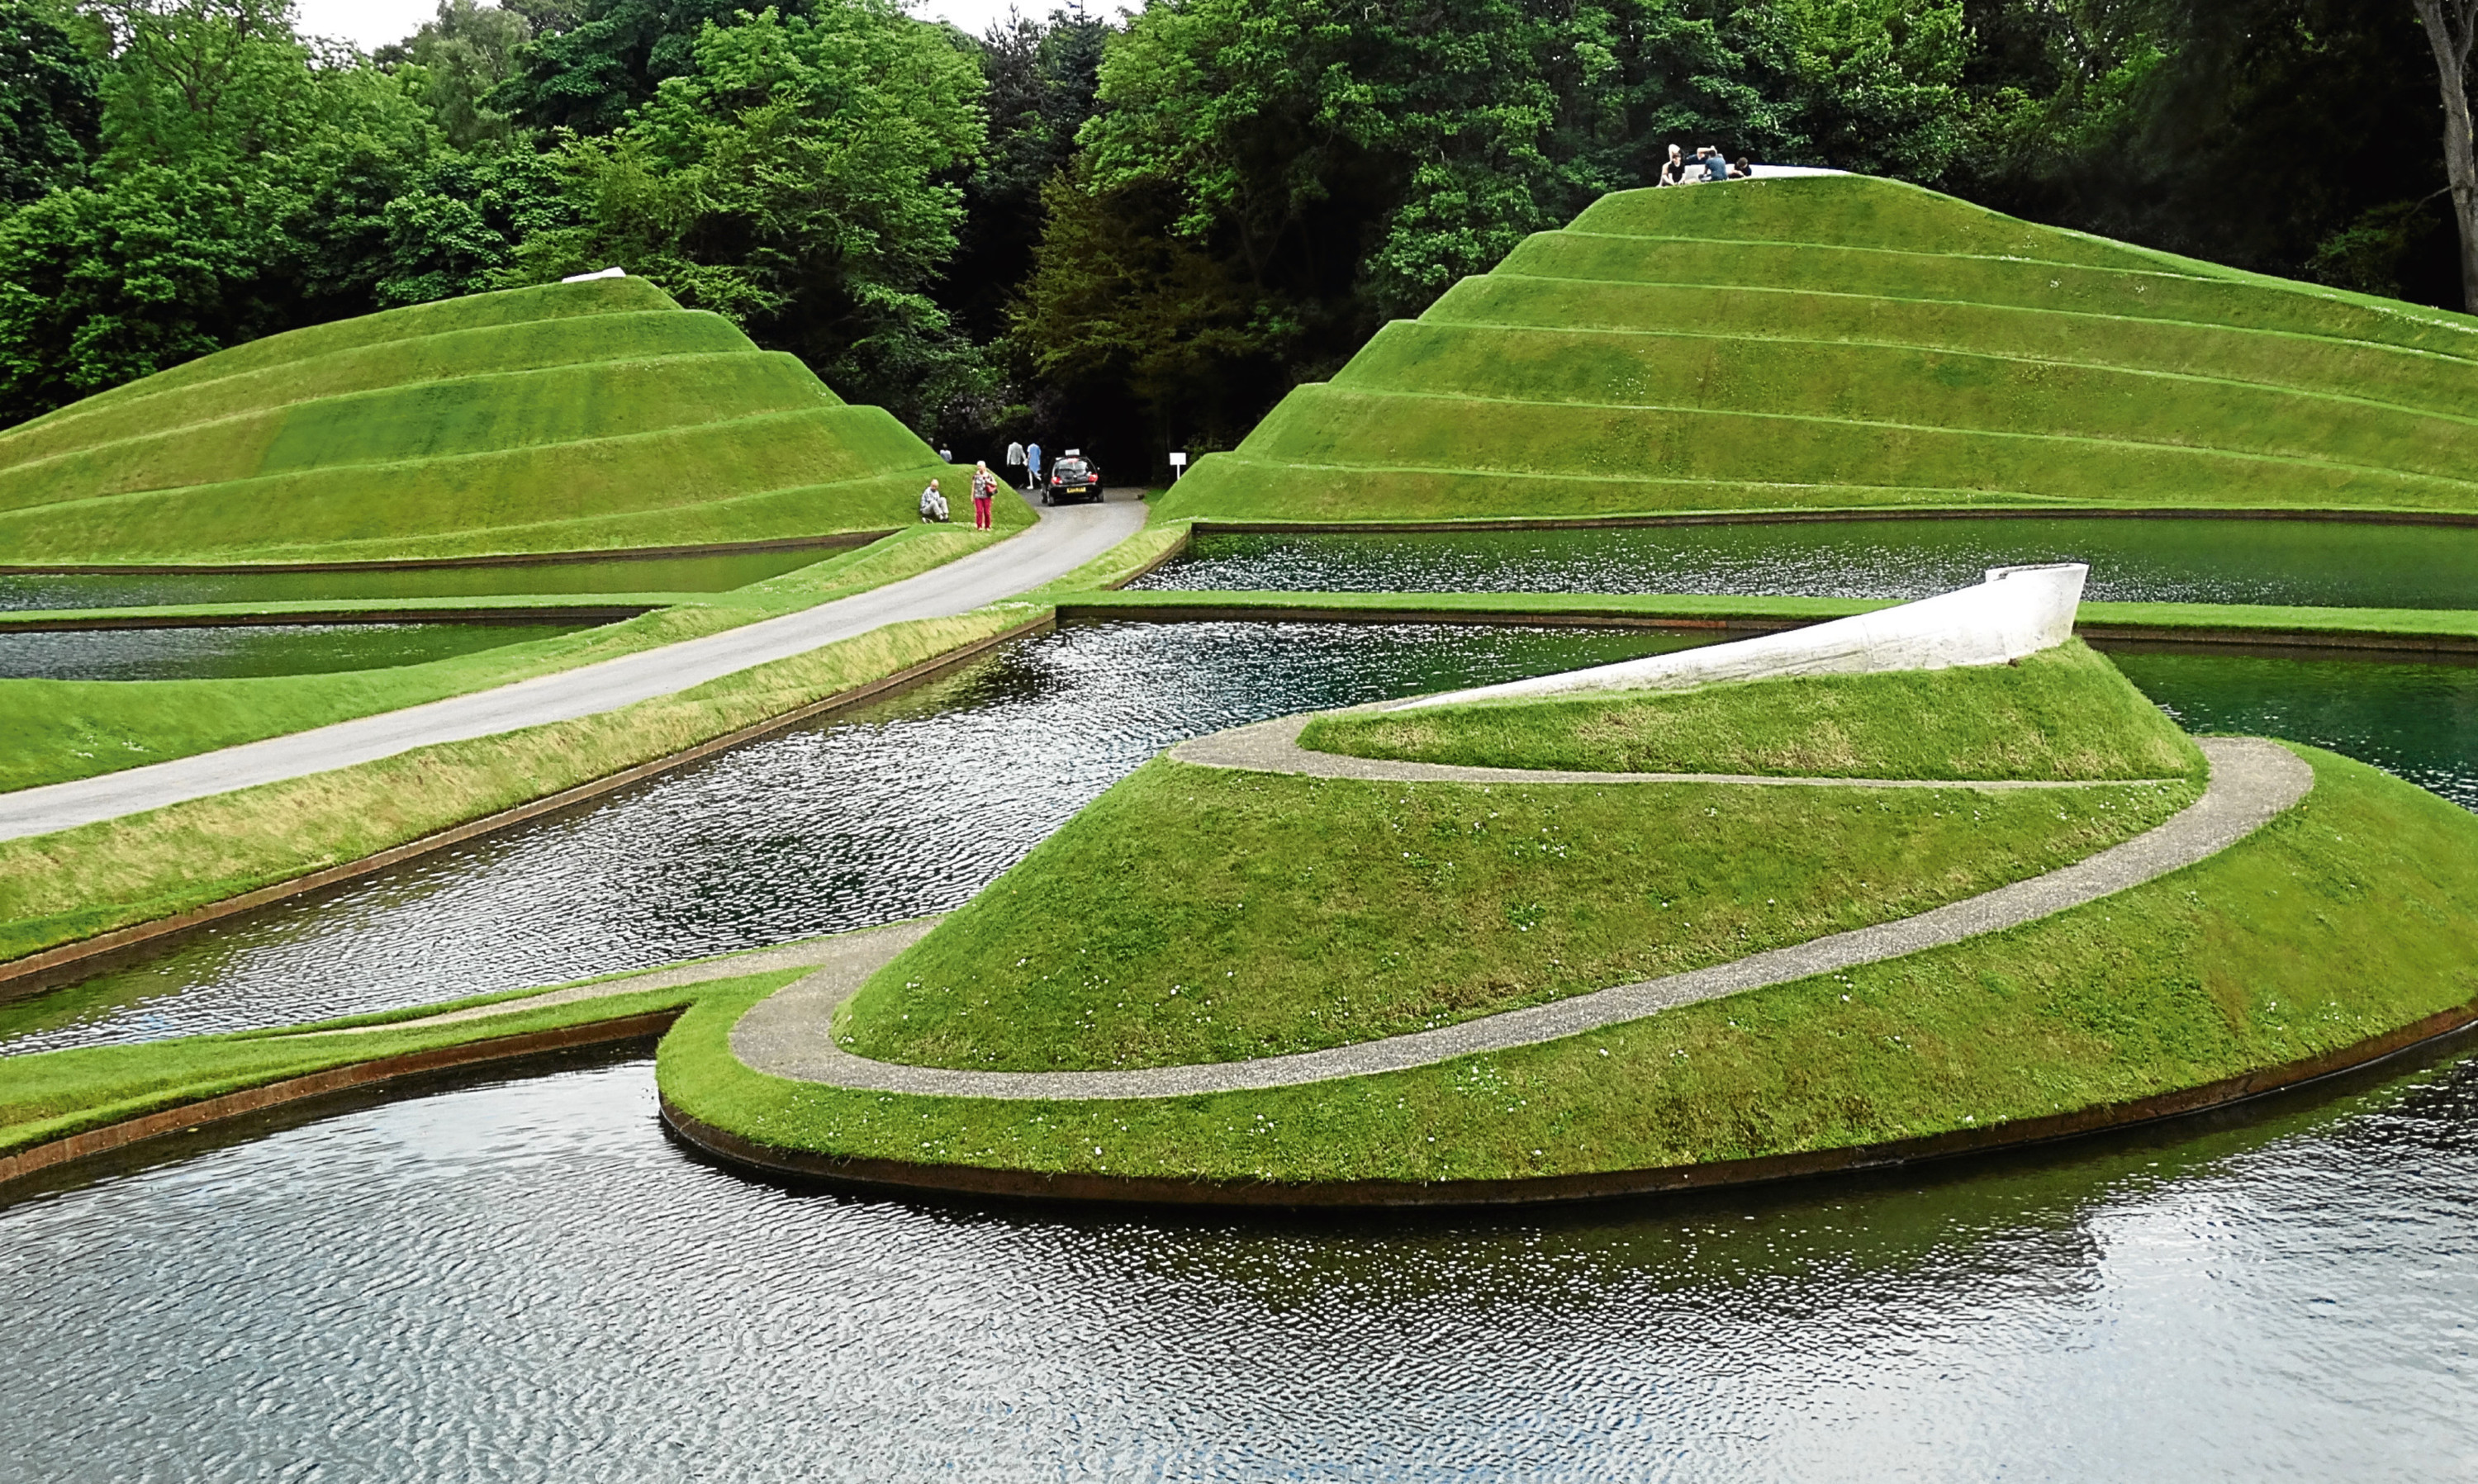 Jupiter Artland in Peebles.